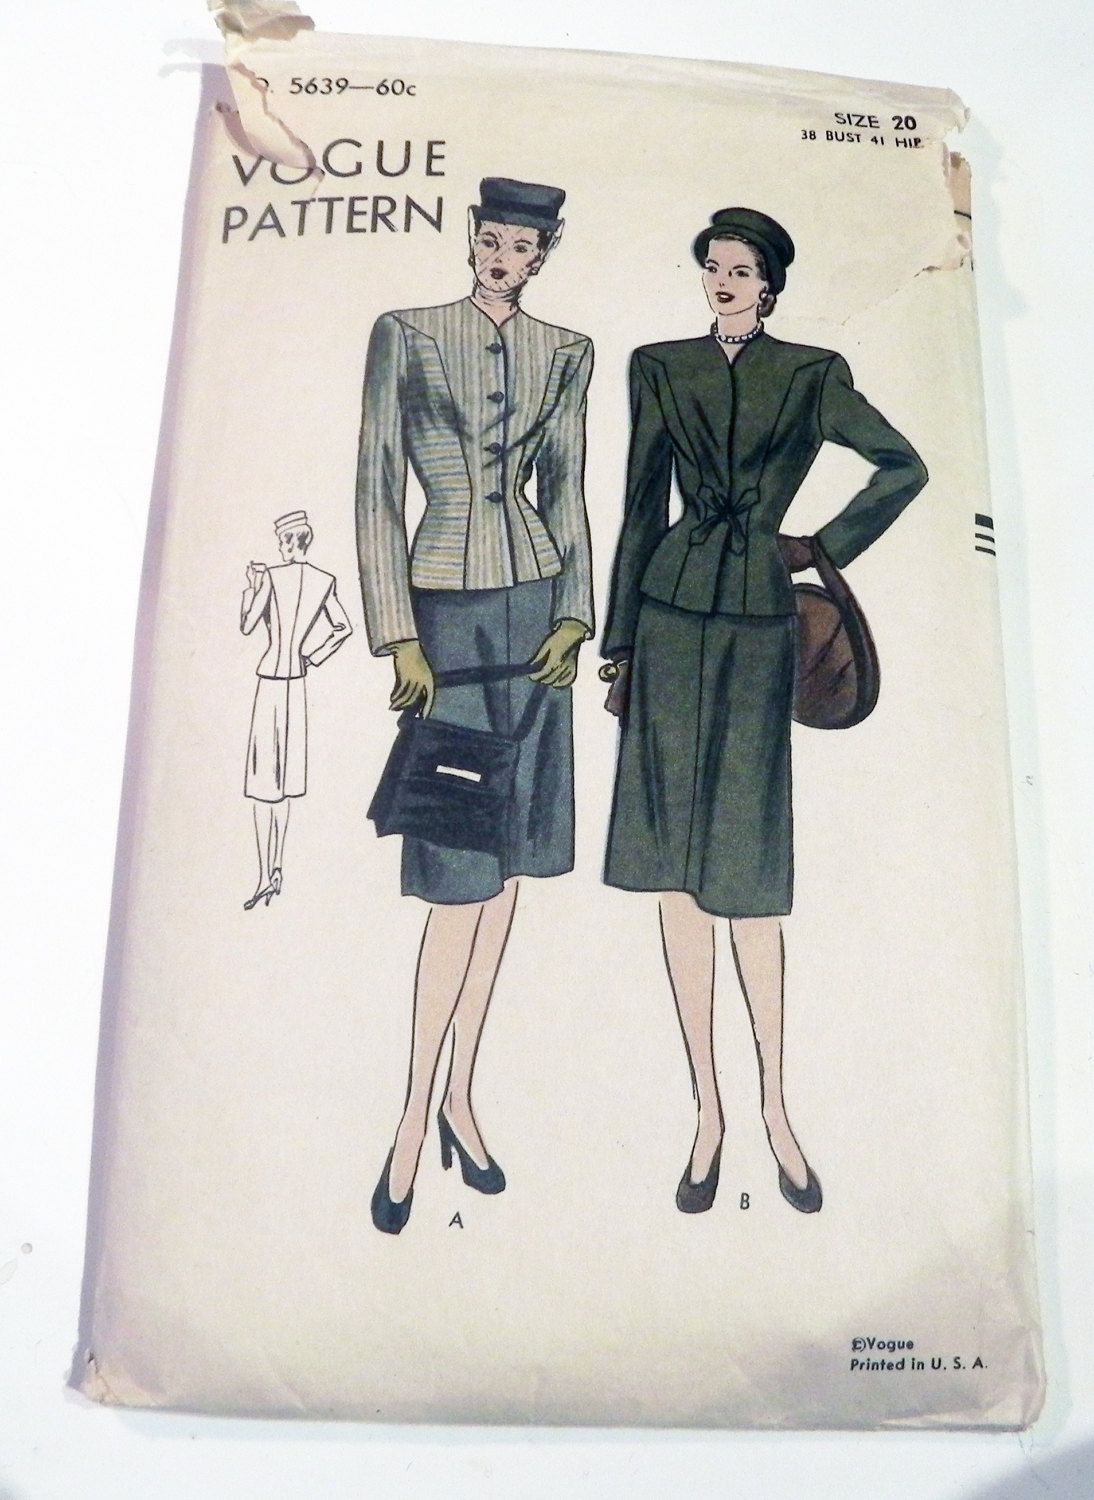 0d6e818e359 1940s Suit Jacket 4 gore flared skirt Rockabilly collarless shaped seams  sewing pattern Plus Size RARE Vogue 5639 Size 40 Bust 38